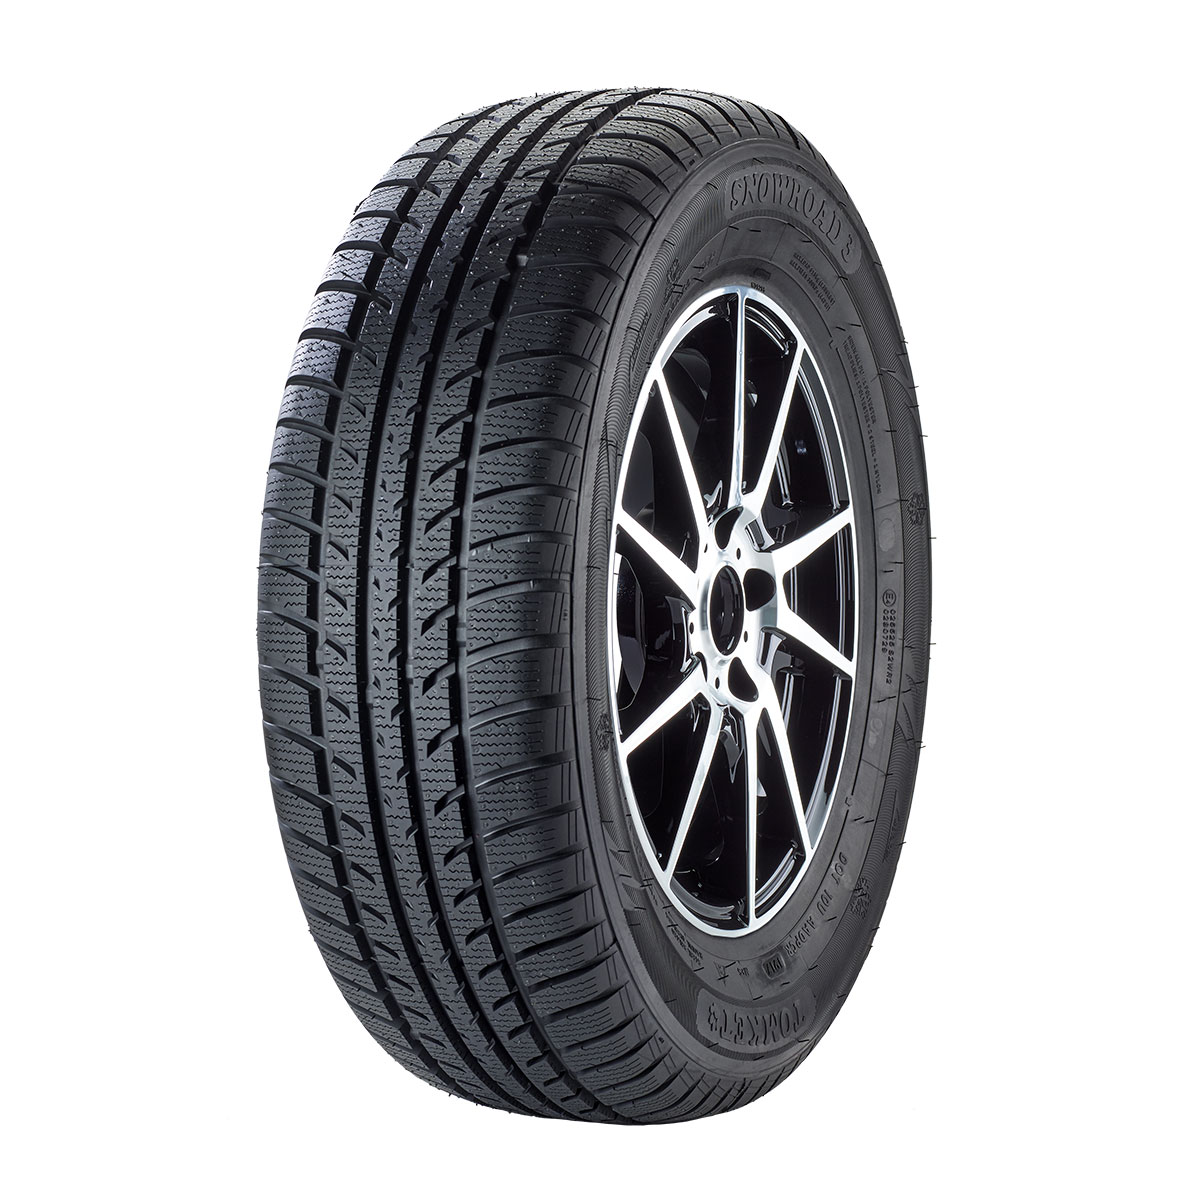 Gomme Nuove Tomket 185/65 R15 88T SNOWROAD 3 M+S (100%) pneumatici nuovi Invernale